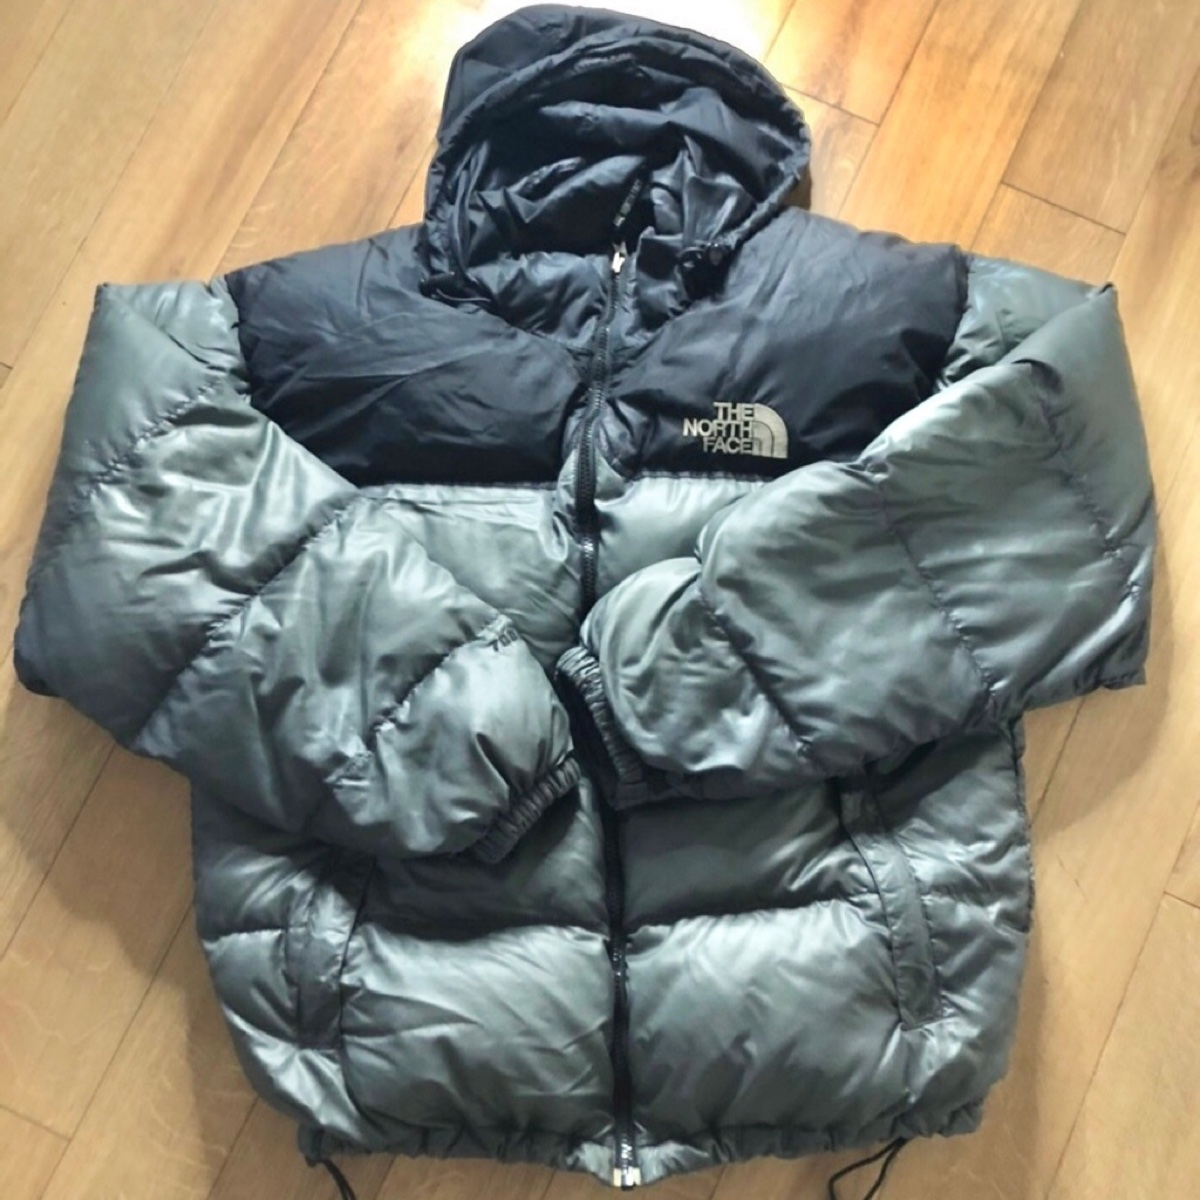 The North Face 700 Nuptse Puffer Jacket: Size L